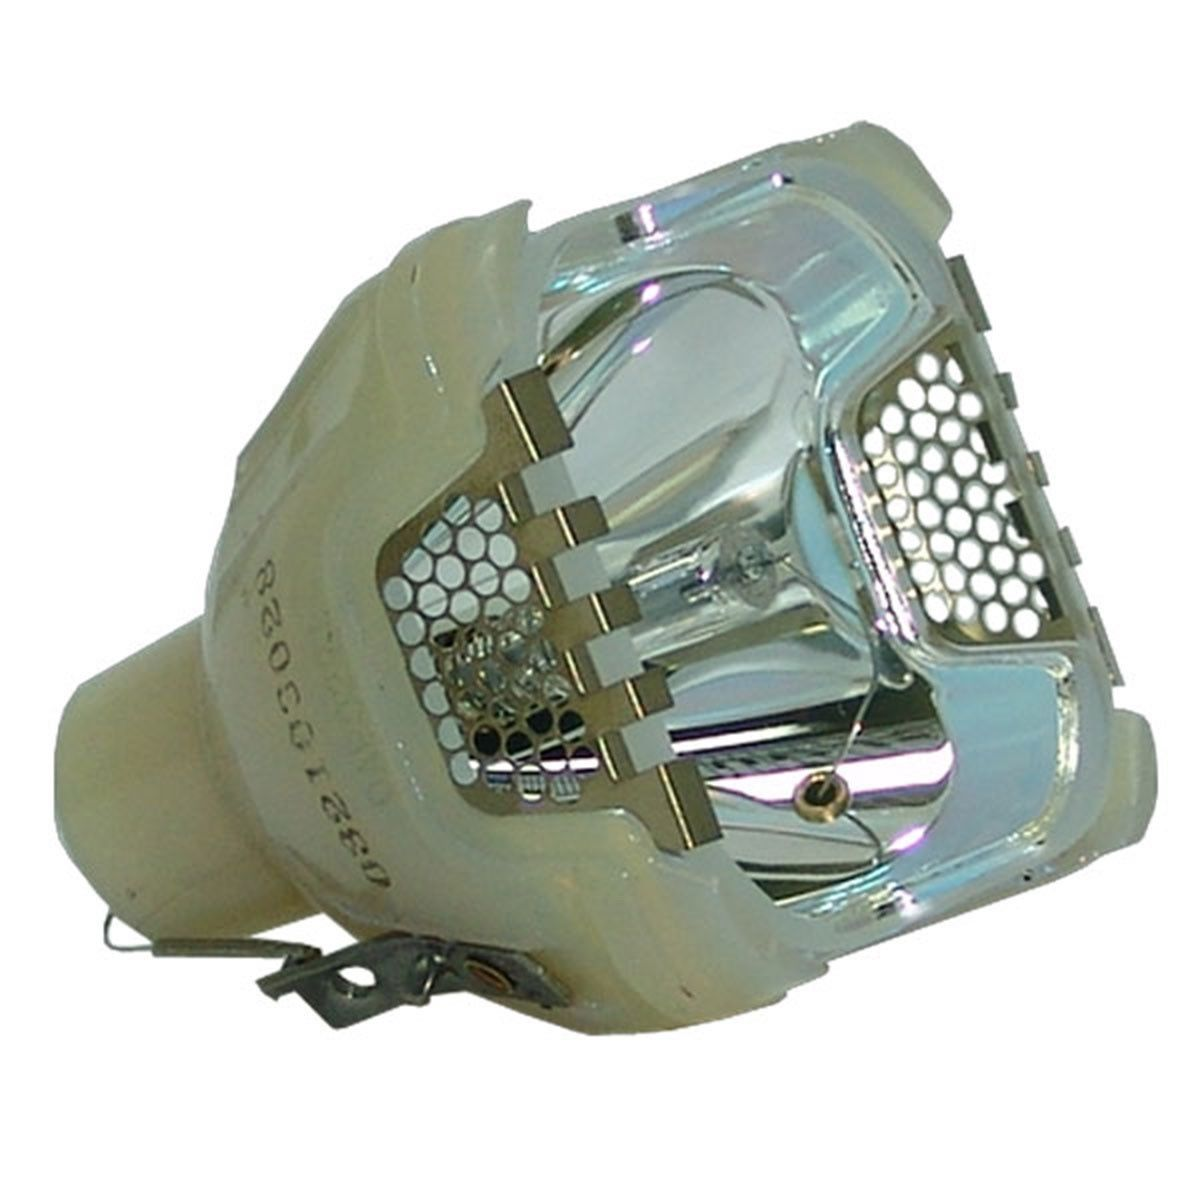 Compatible Bare Bulb LV-LP19 9269A001 for Canon LV-5210 / LV-5220 / LV-5220E Projector Lamp Bulb without housing compatible projector lamp for canon lv lp19 9269a001aa lv 5210 lv 5220 lv 5220e